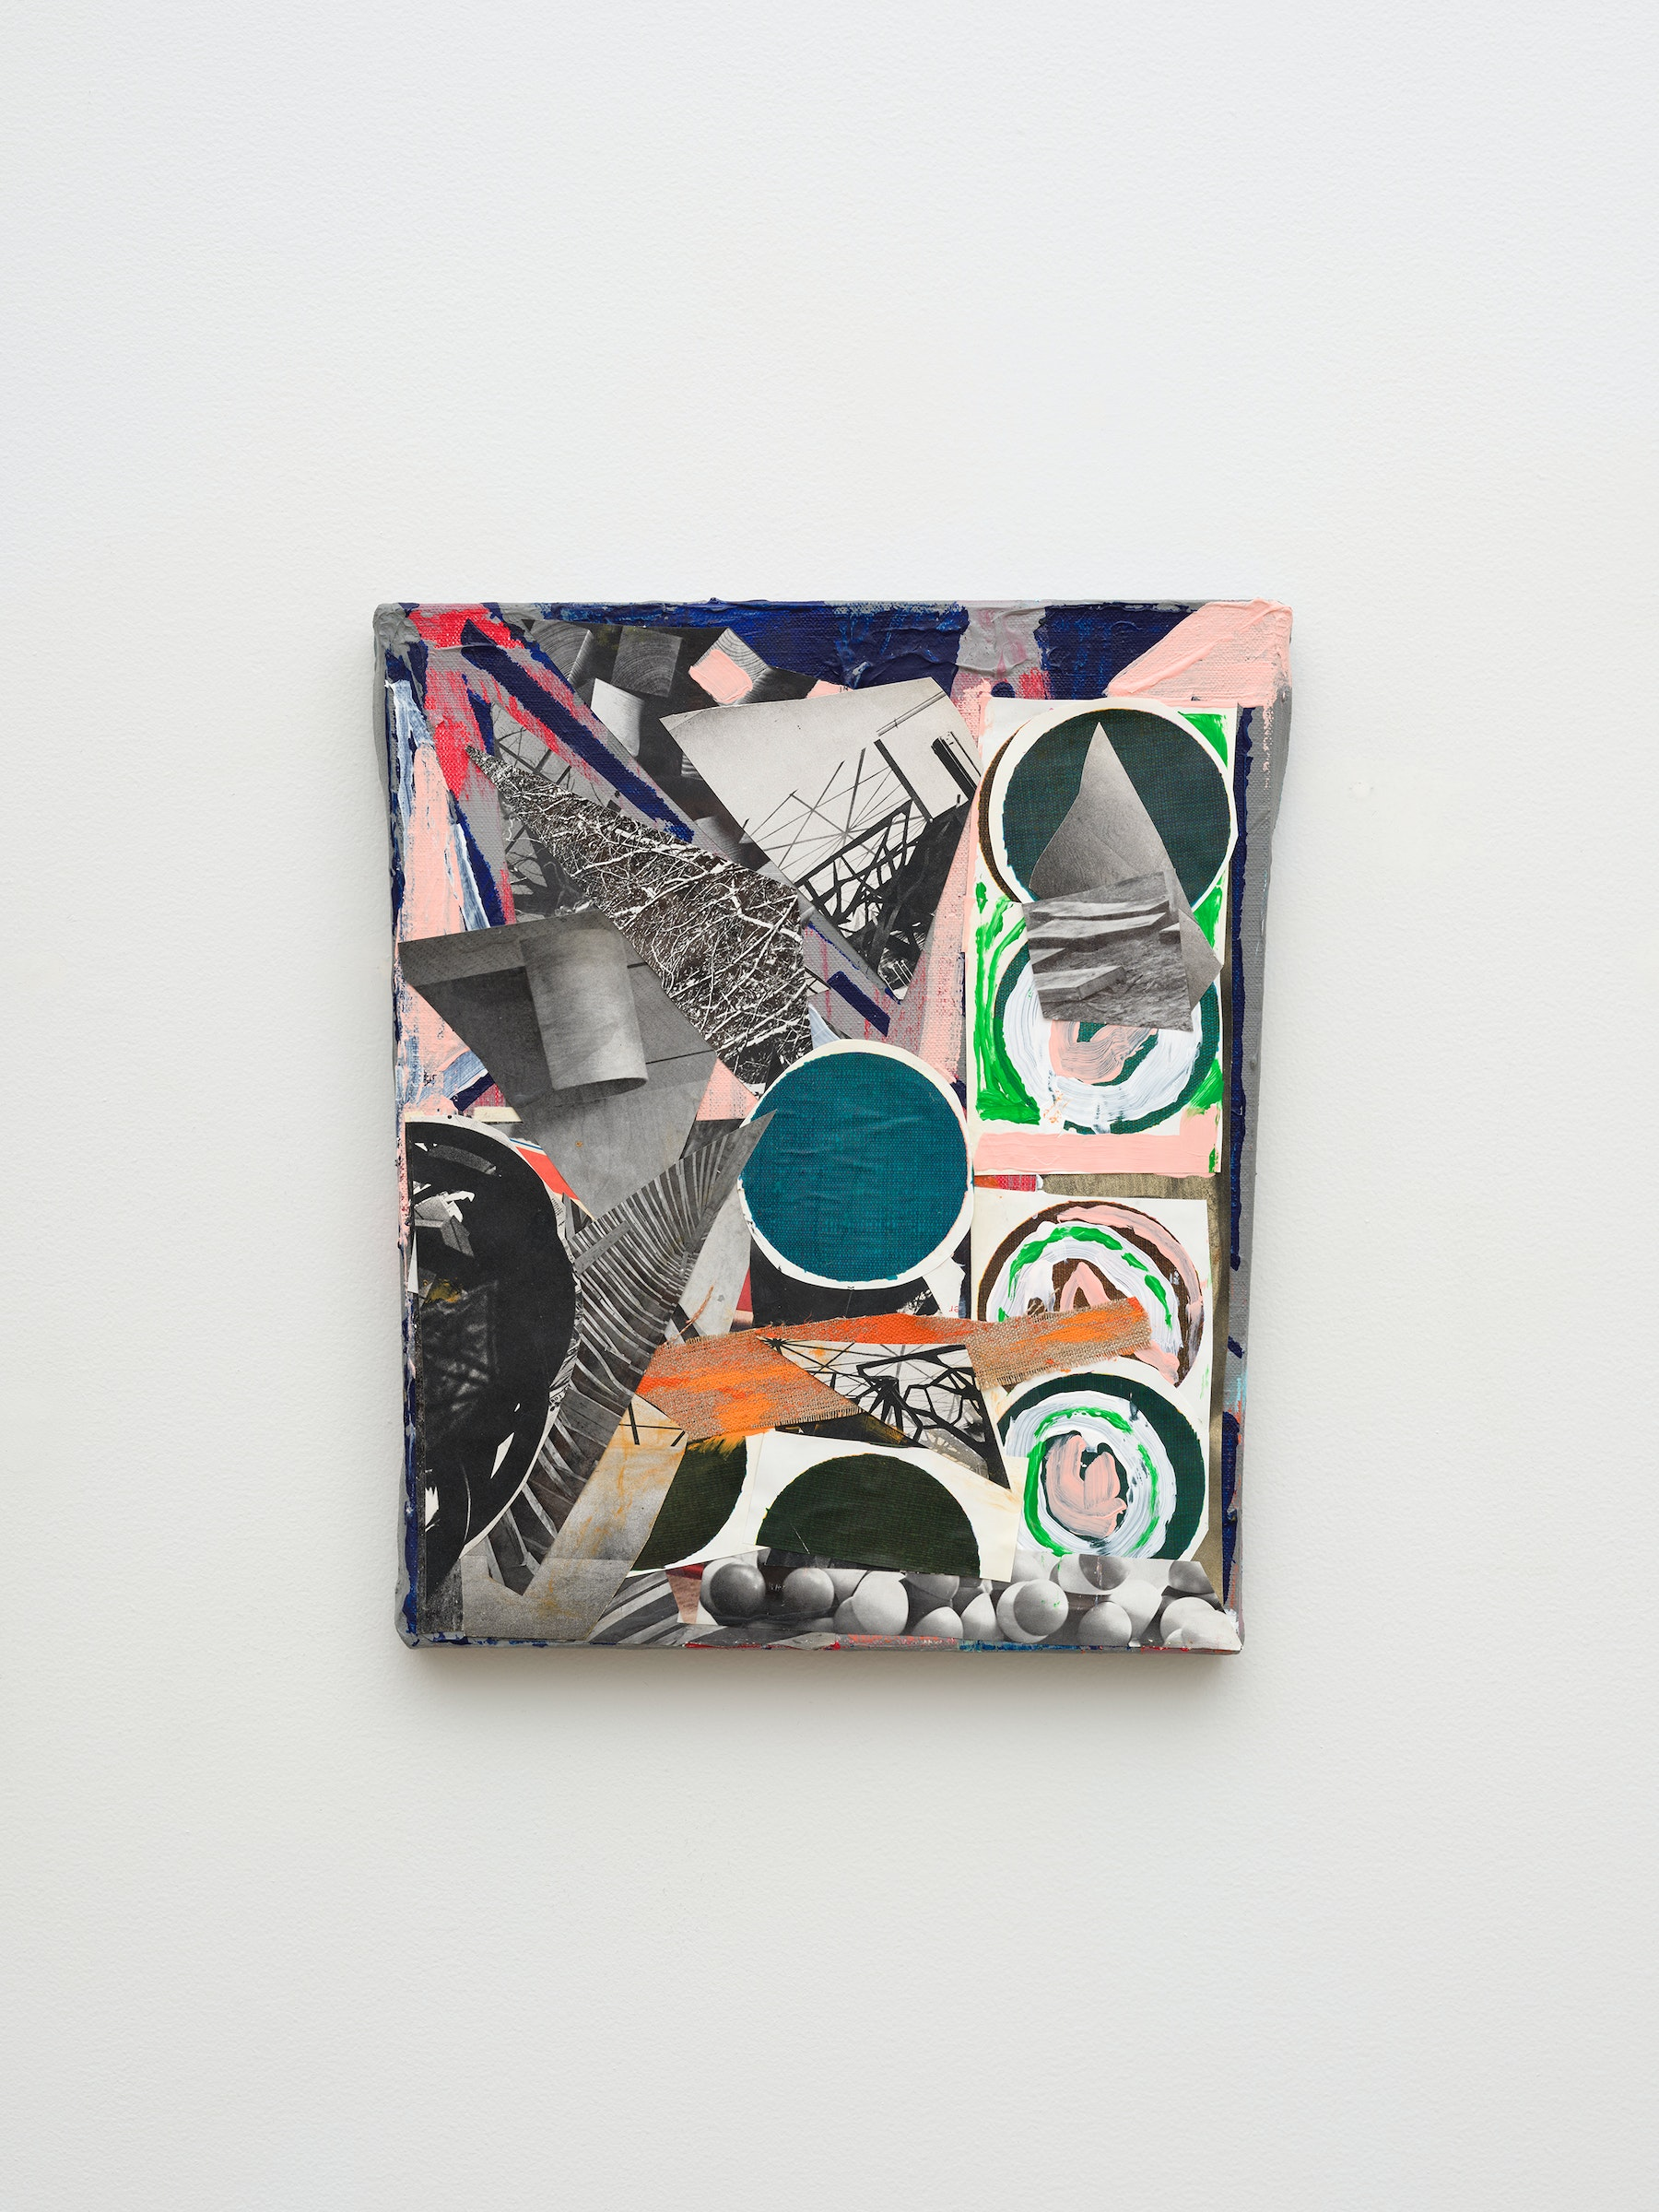 """Steve Roden """"circles,"""" 2020 Mixed media on canvas 14"""" x 11 ¹⁄₄"""" x 1"""" [HxWxD] (35.56 x 28.58 x 2.54 cm) Inventory #ROD698 Courtesy of the artist and Vielmetter Los Angeles Photo credit: Jeff McLane Signed and dated on the back"""